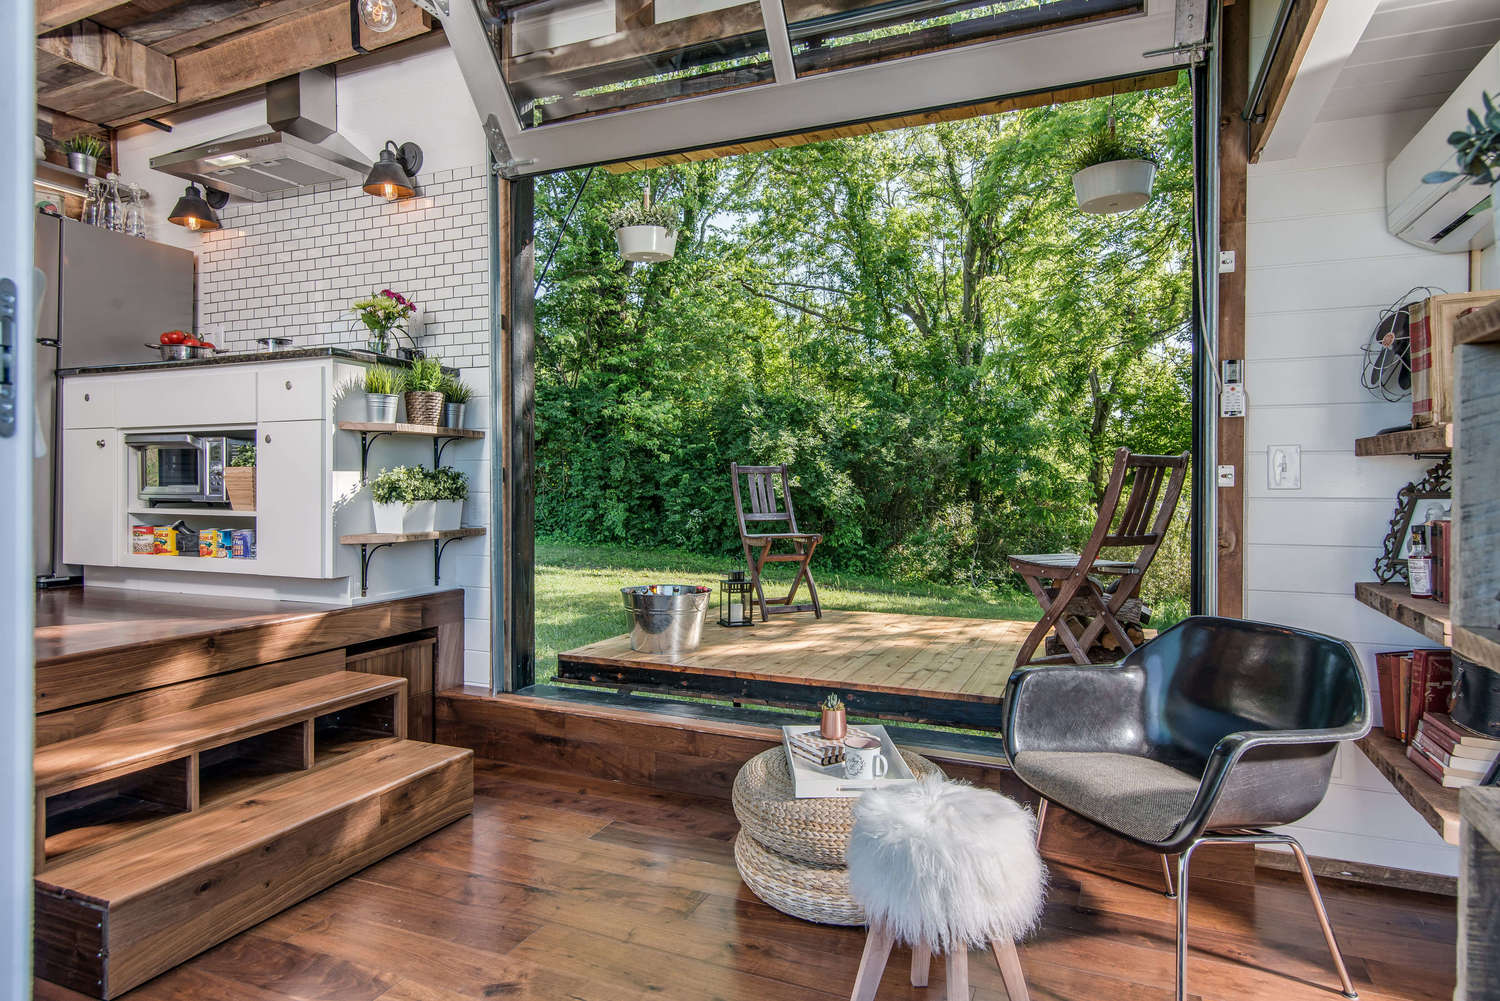 Tricked out tiny home features garage door and custom deck for Small house deck designs